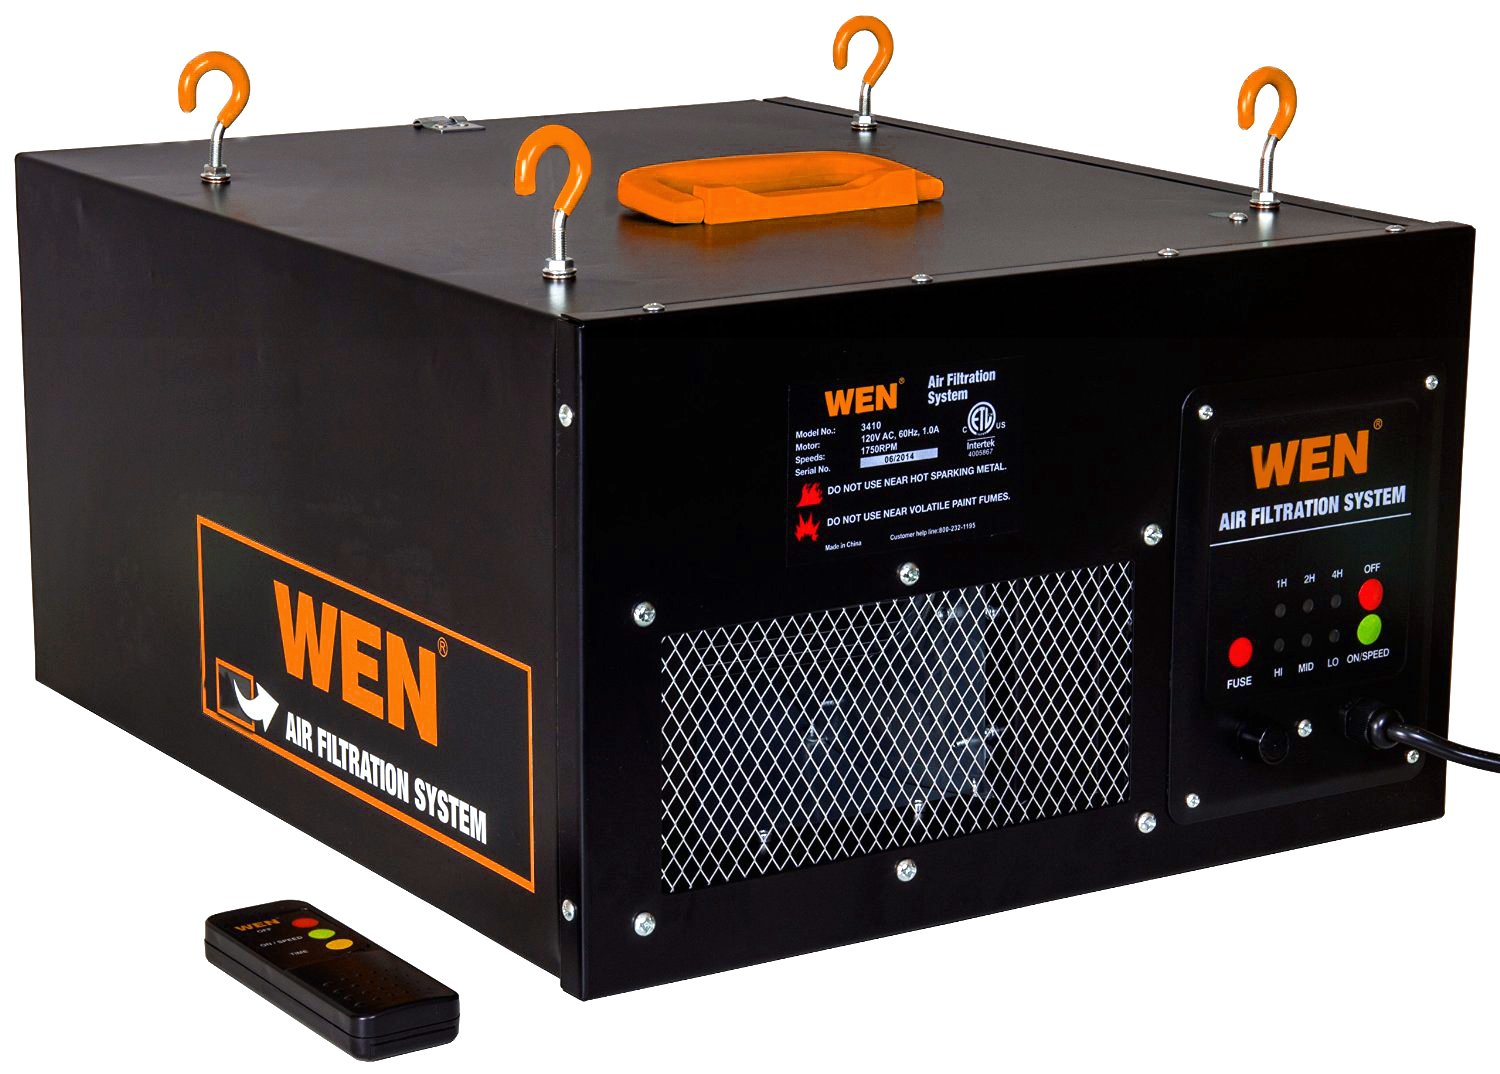 WEN 3410 3-Speed Remote-Controlled Air Filtration System by WEN (Image #7)